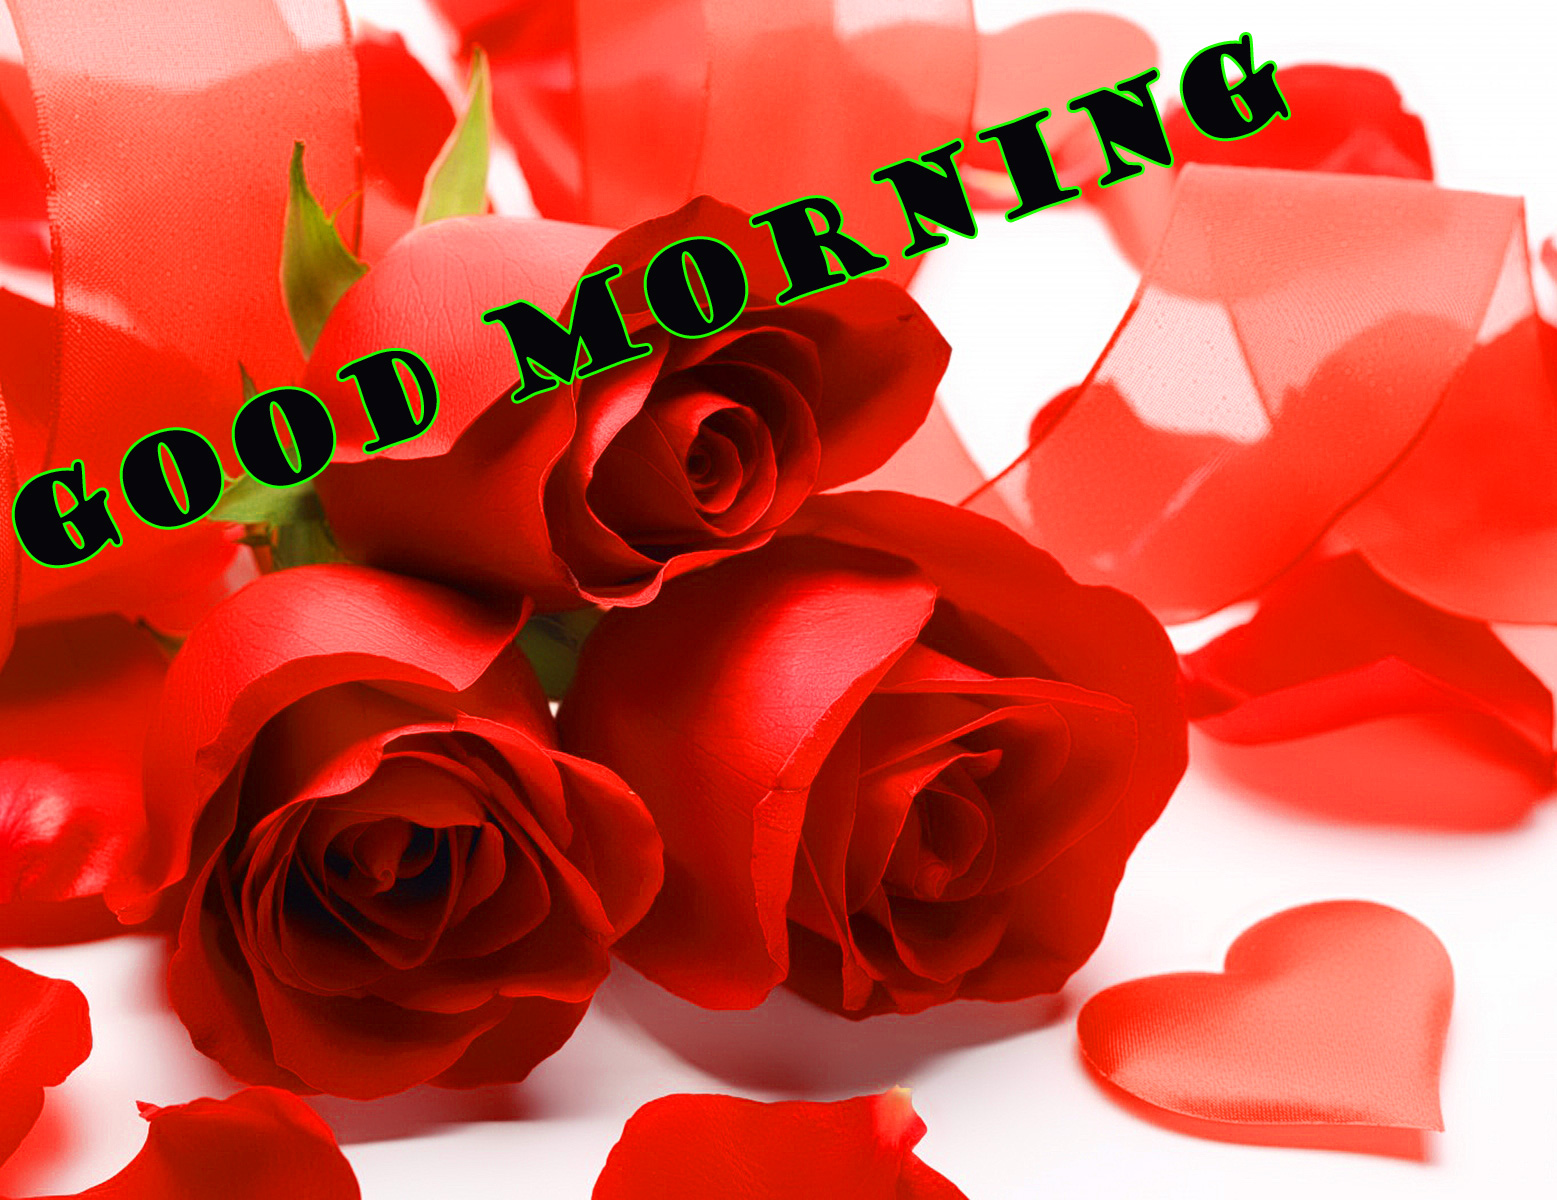 Good Morning Red Rose Photo Wallpaper Pictures Download